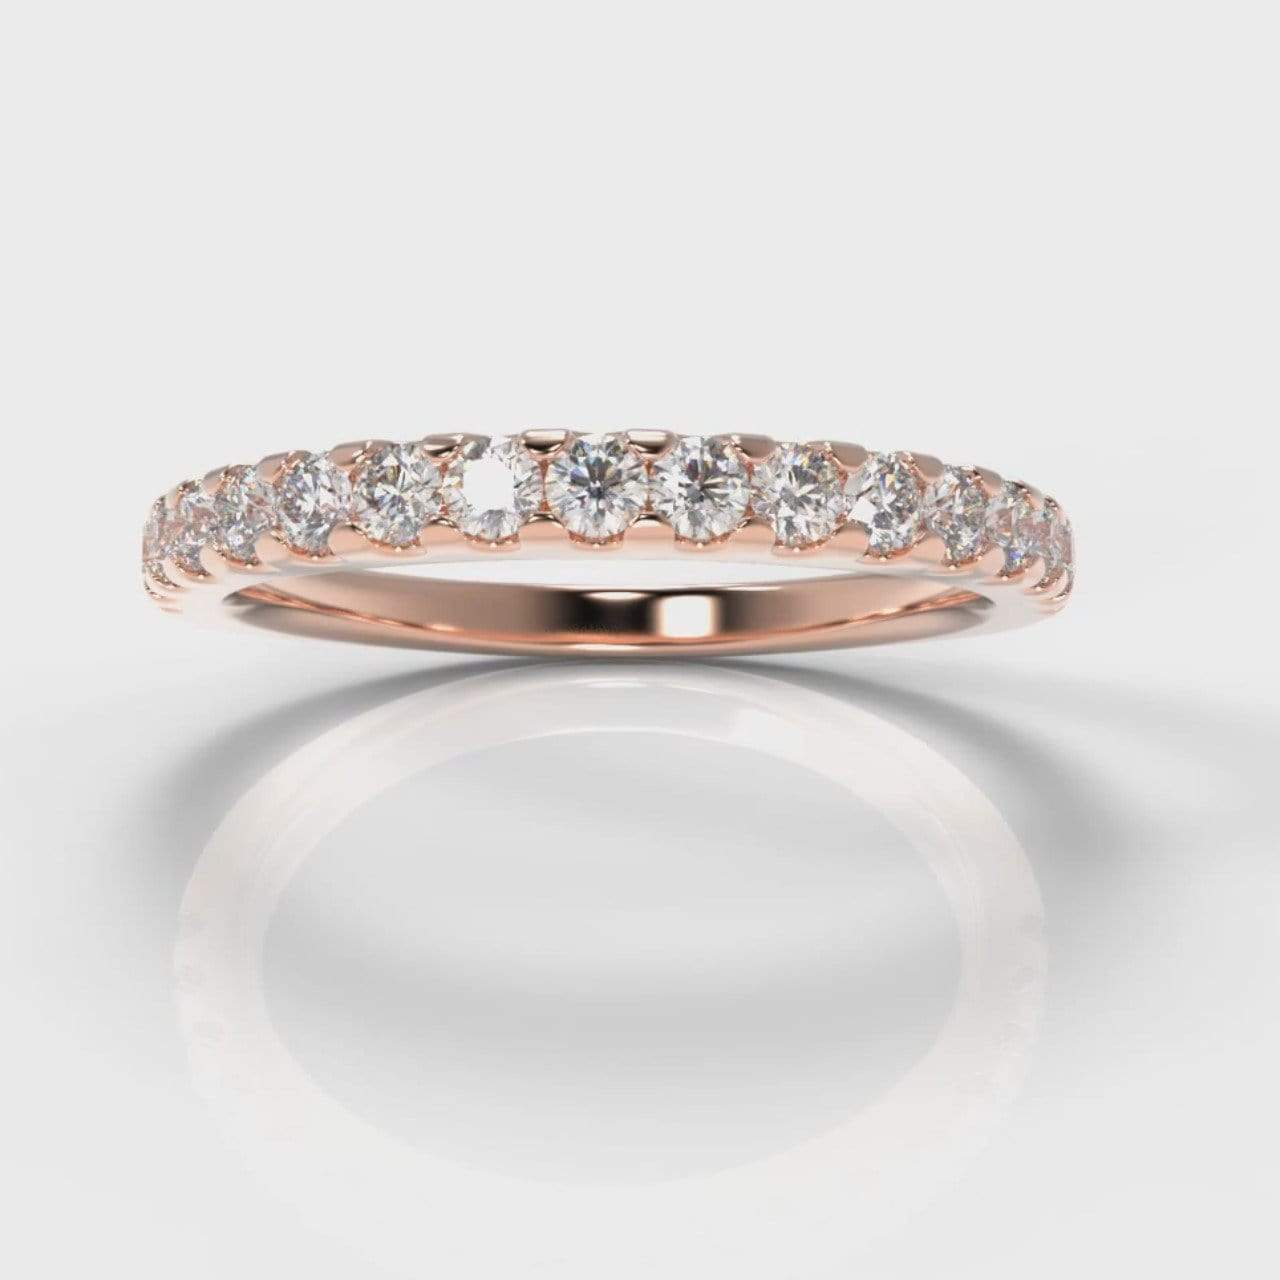 Castle Set Lab Diamond Wedding Band - Rose Gold-Wedding Ring-Pure Carats-Pure Carats